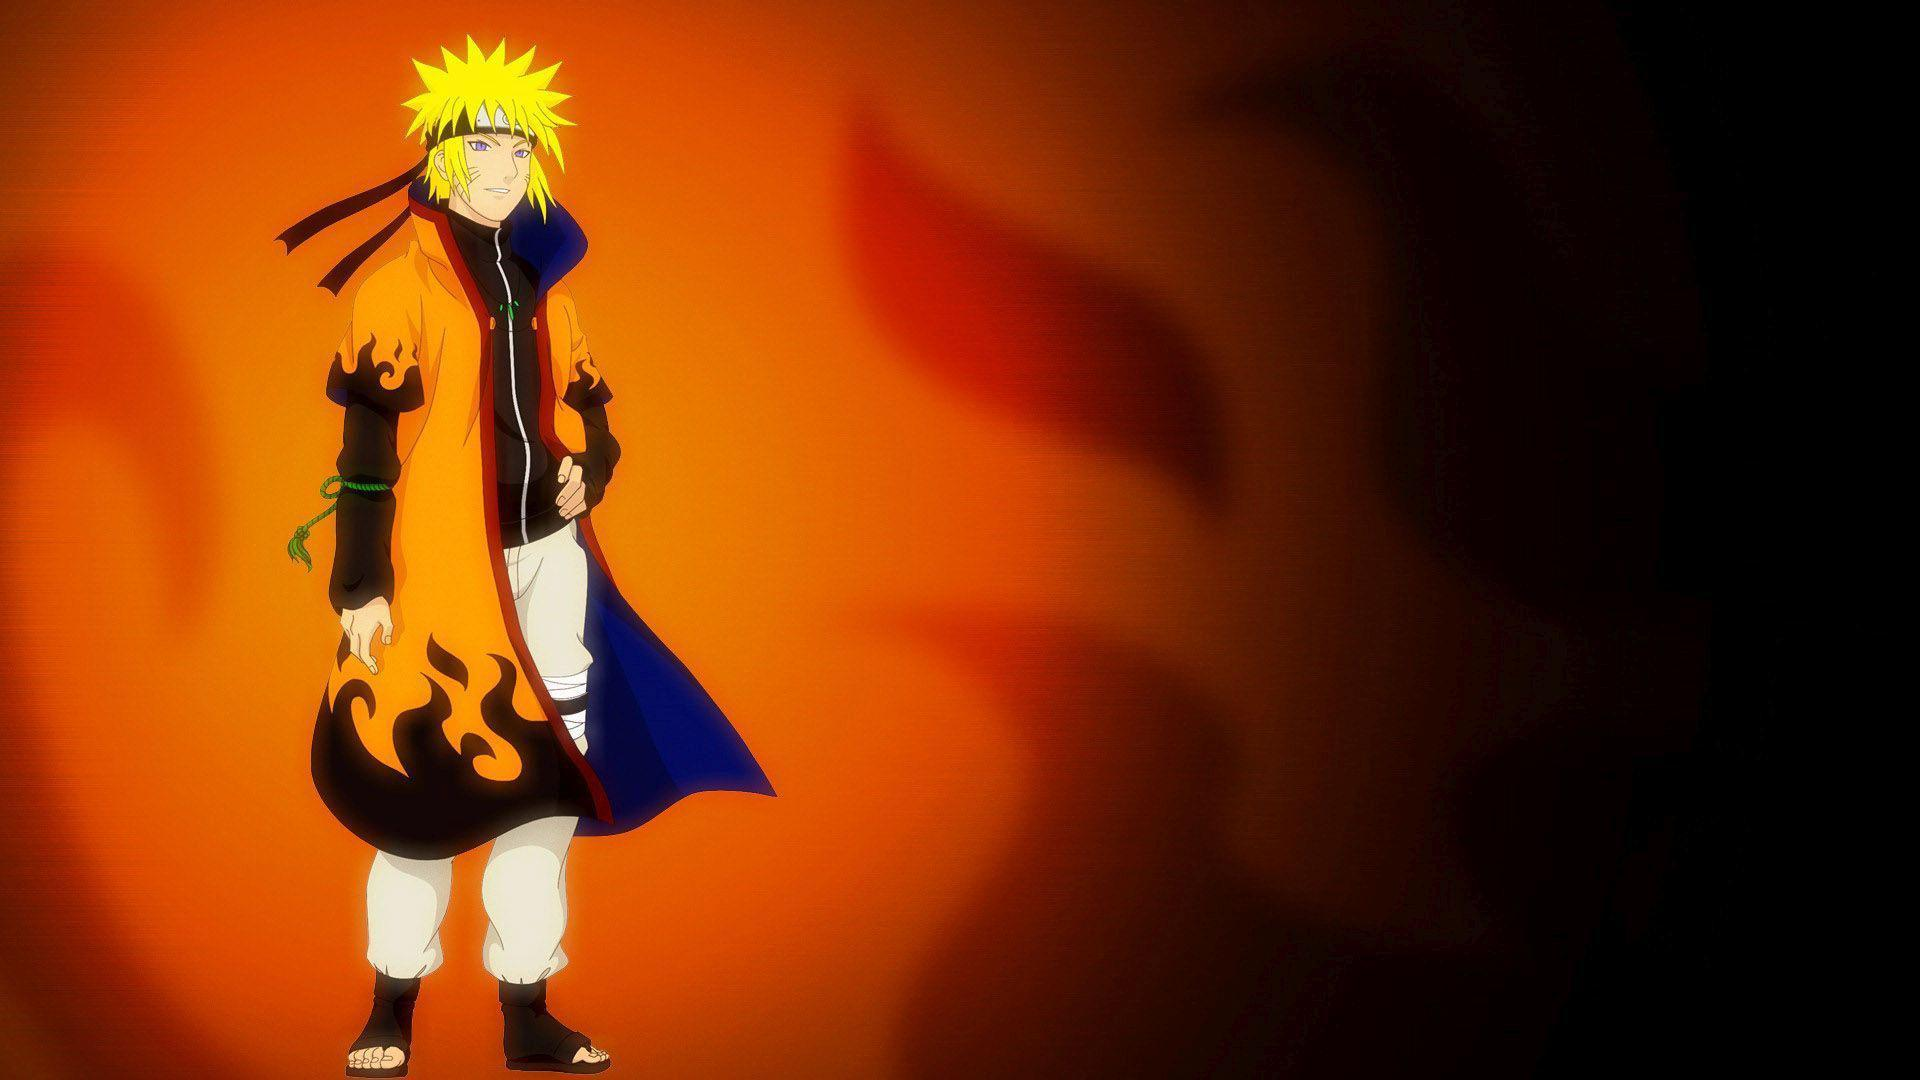 Naruto Hypebeast Computer Wallpapers Wallpaper Cave